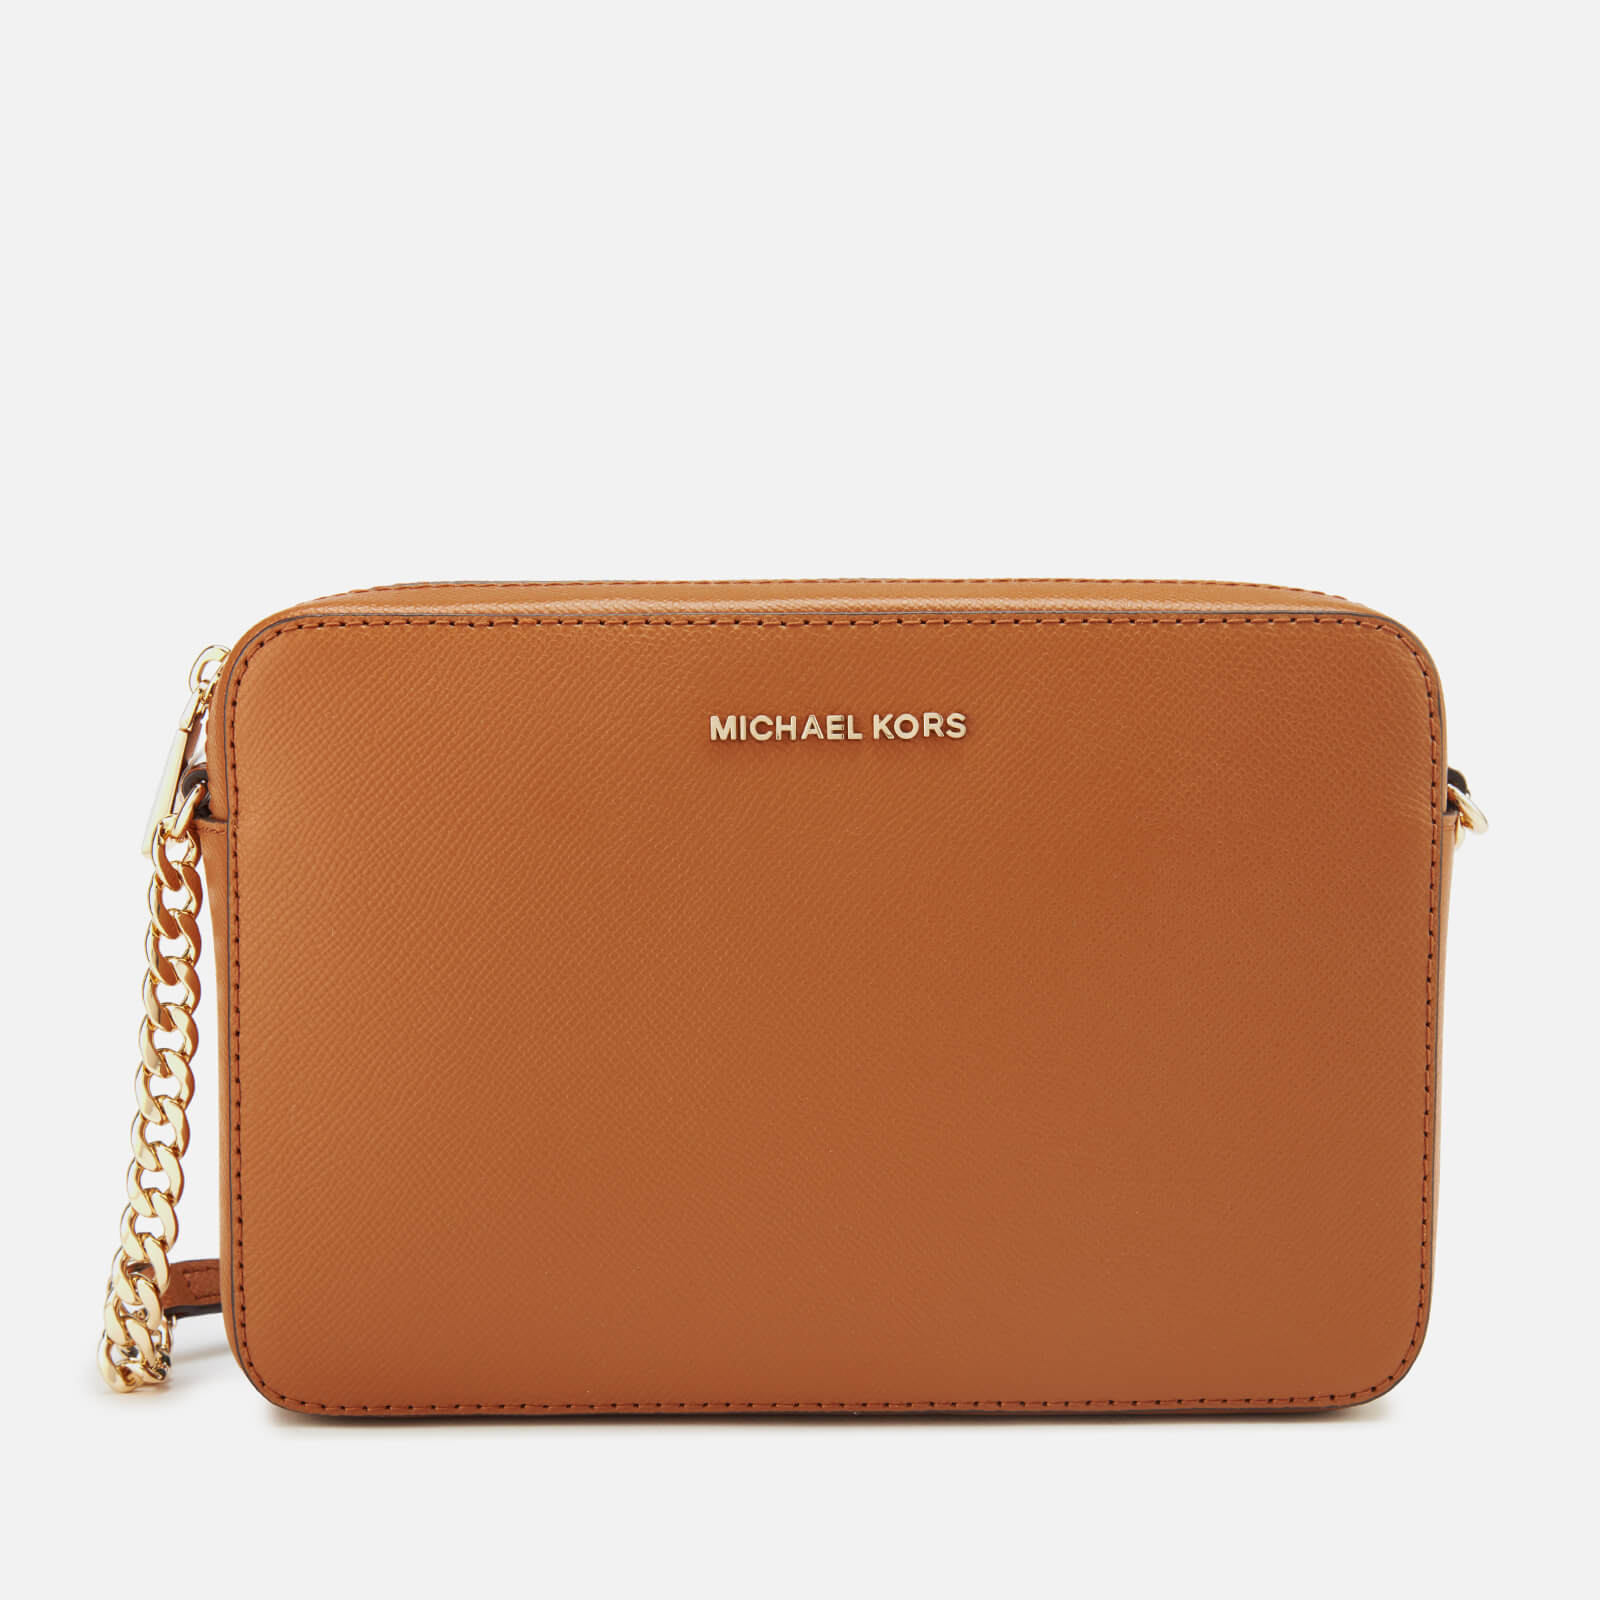 MICHAEL MICHAEL KORS Women's Crossbodies Large East West Cross Body Bag - Acorn 原價175英鎊 優惠價105